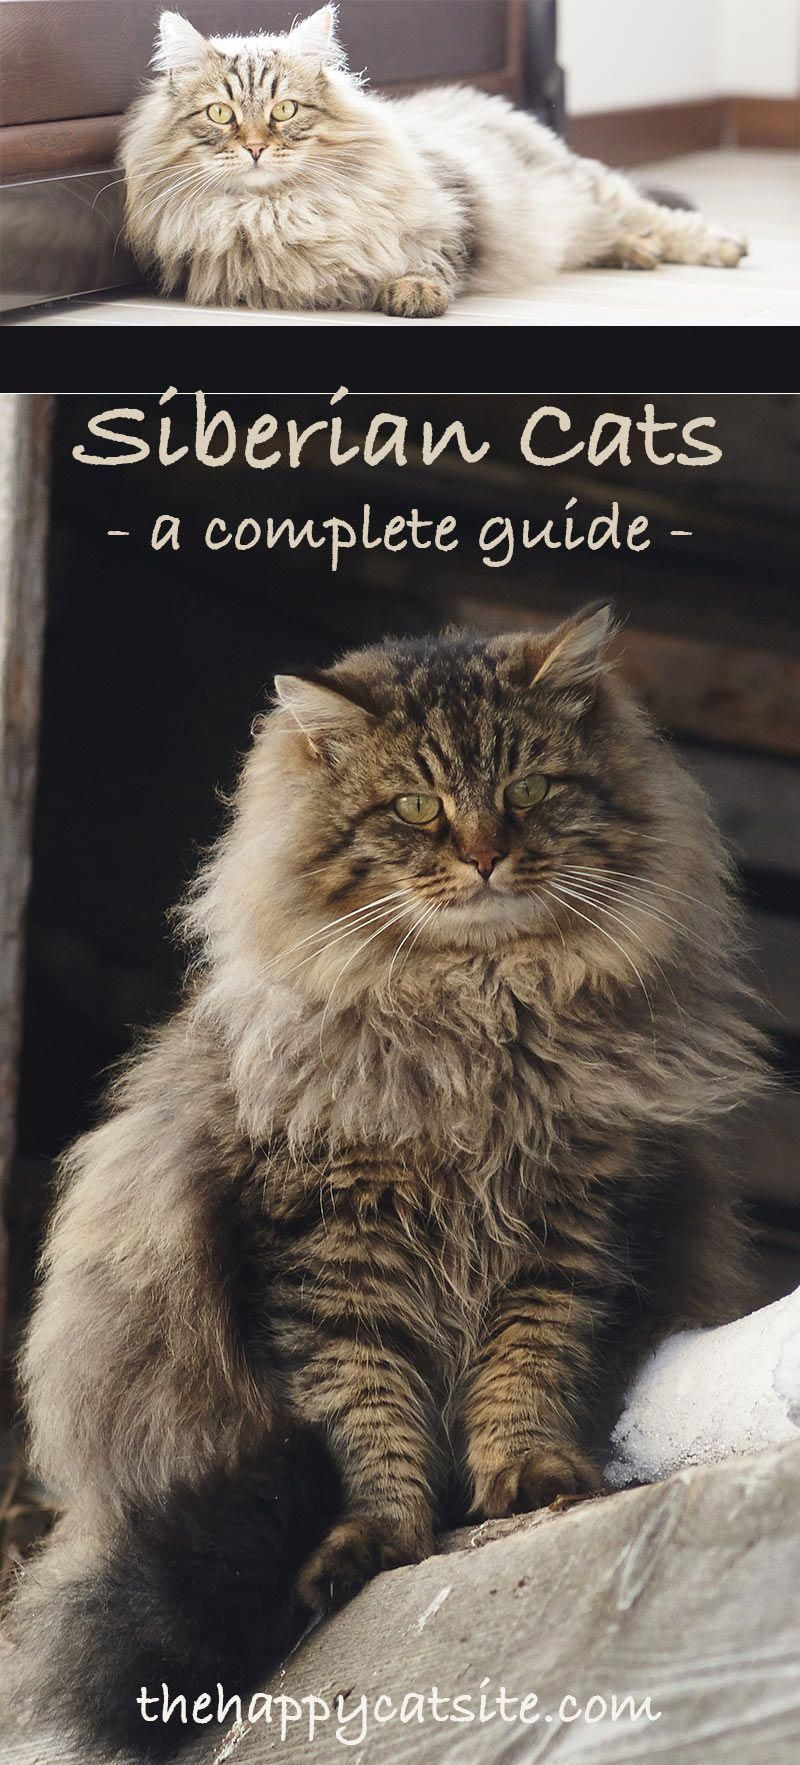 Siberian Cat A Complete Guide to the Unique Siberian